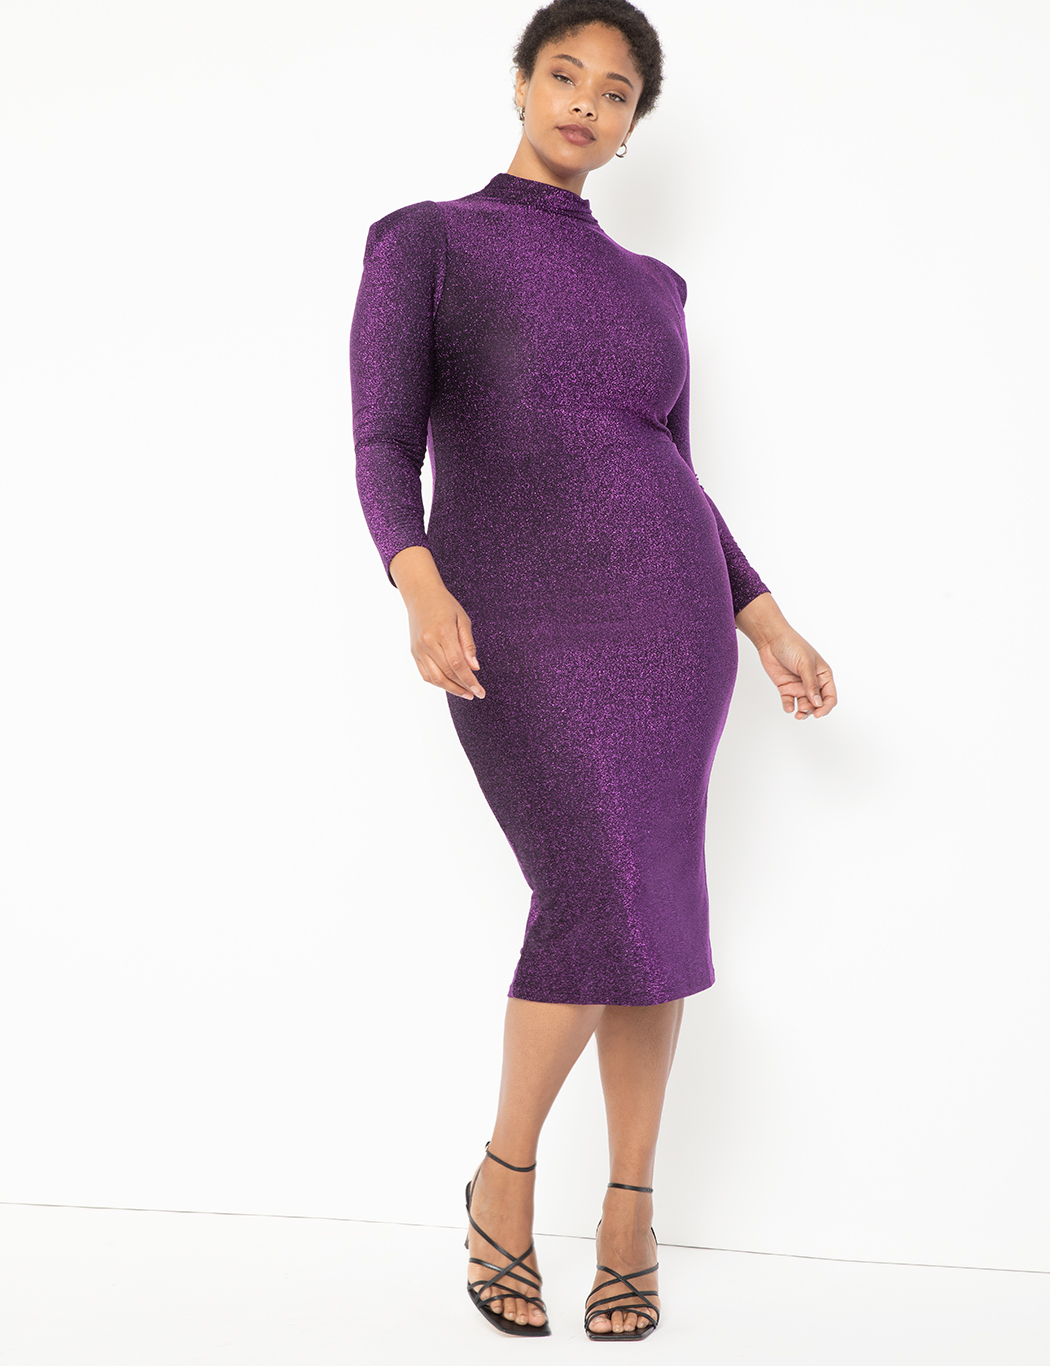 Turtleneck Bodycon Dress 12